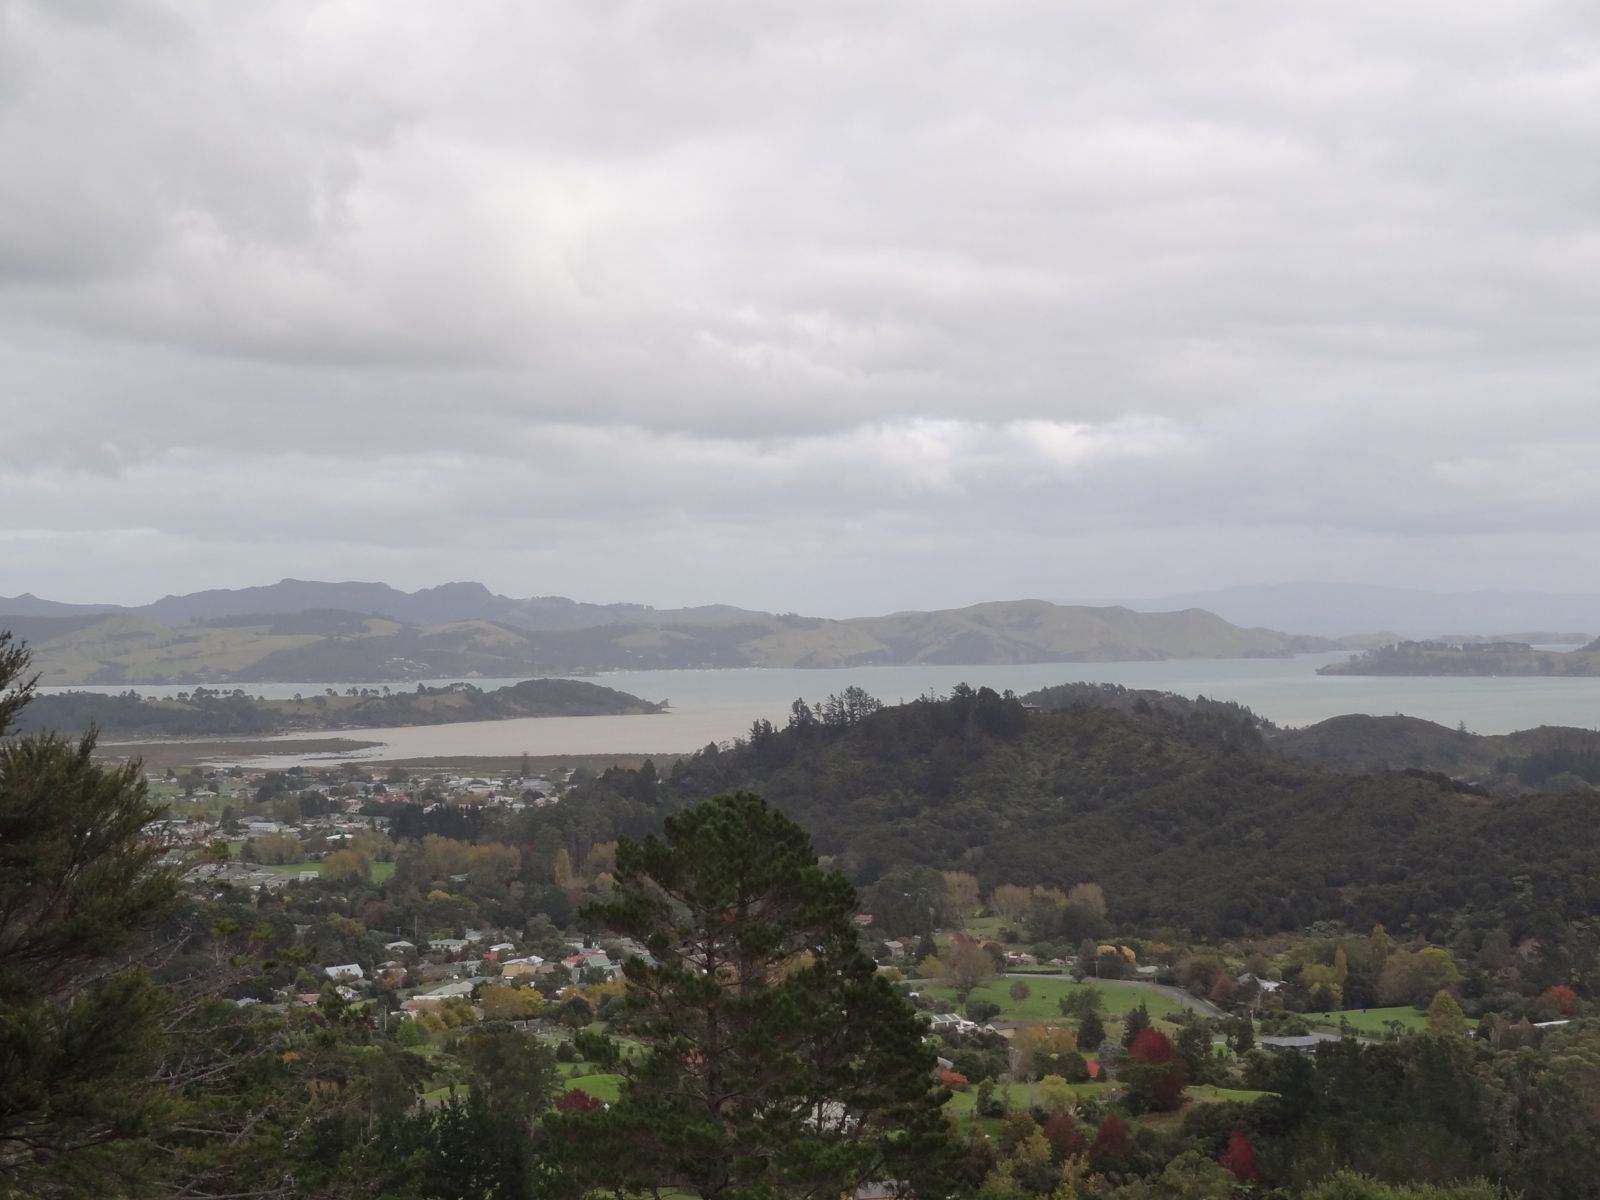 Coromandel Town from the Eyeful Tower